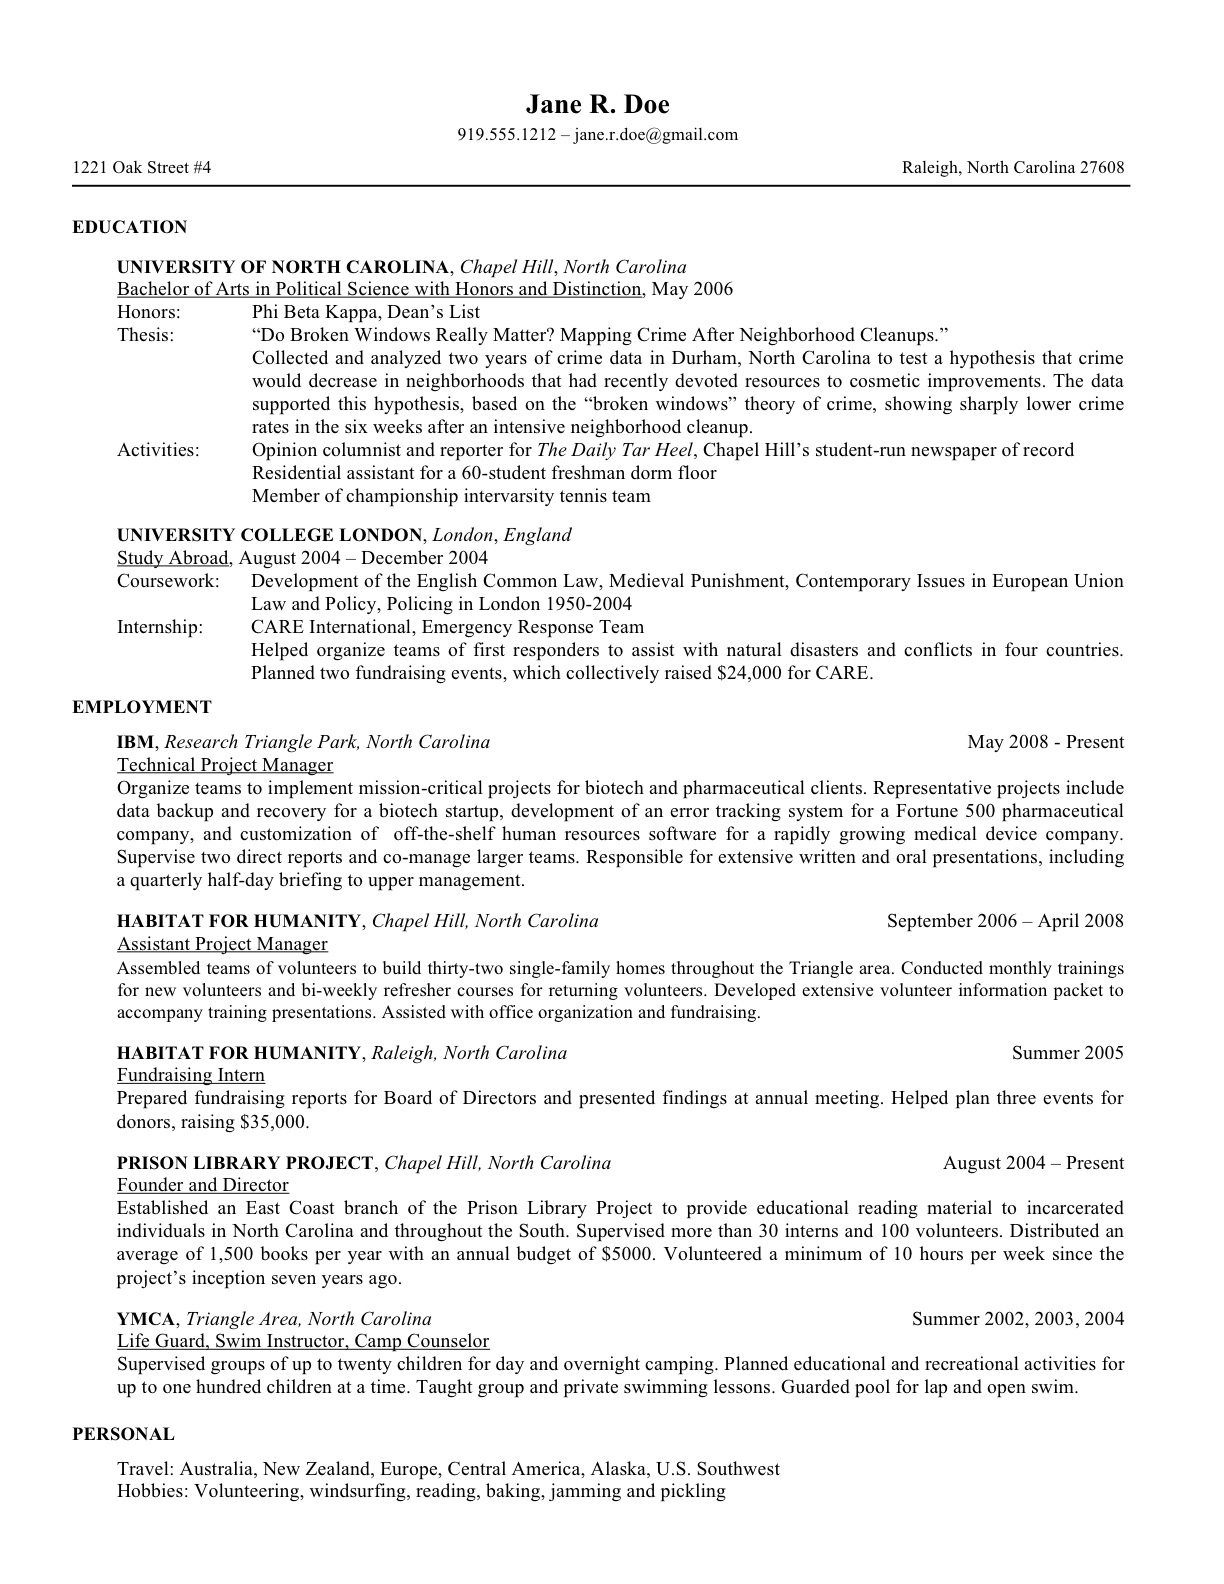 law school resume templates prepping your for of university at harvard business guide Resume Harvard Business School Resume Guide